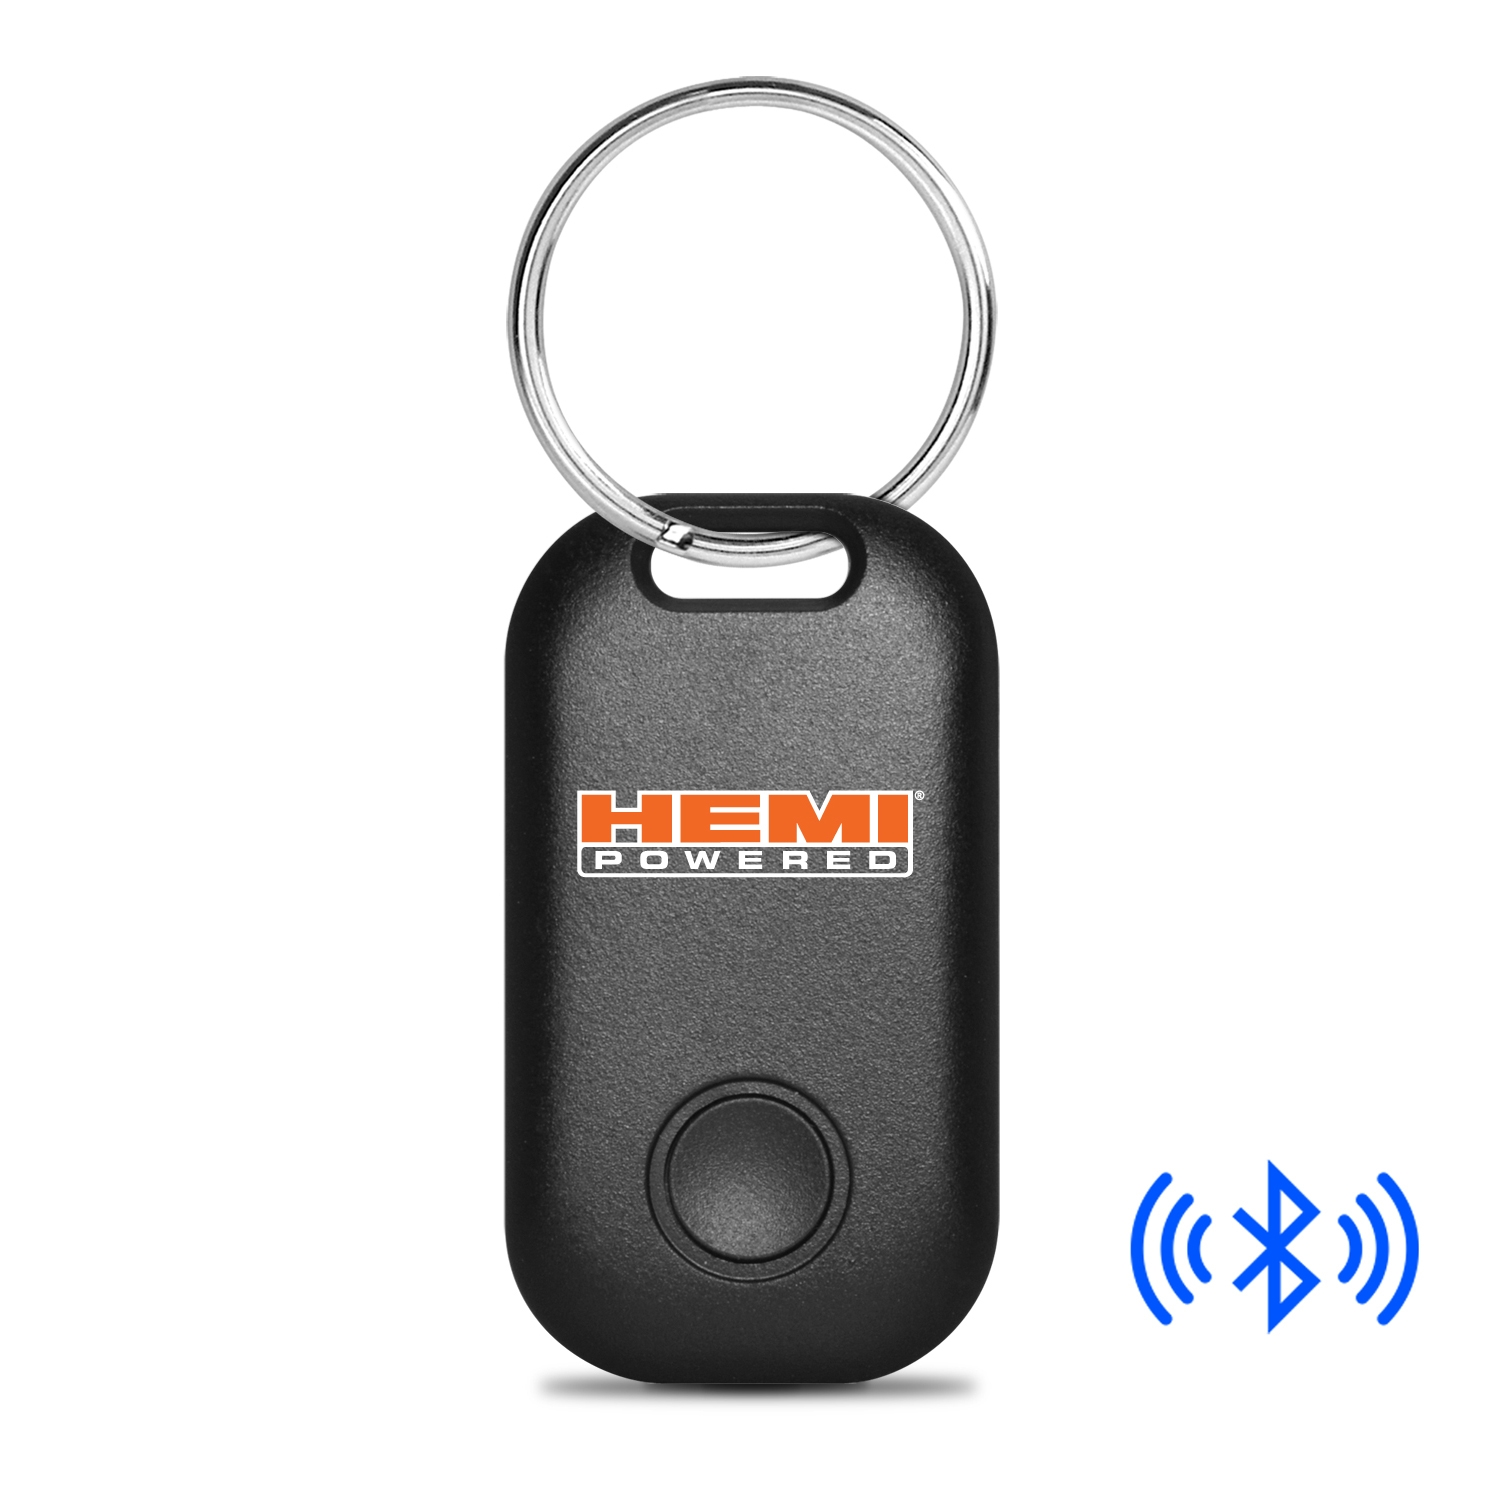 HEMI Powered Bluetooth Smart Key Finder Black Key Chain